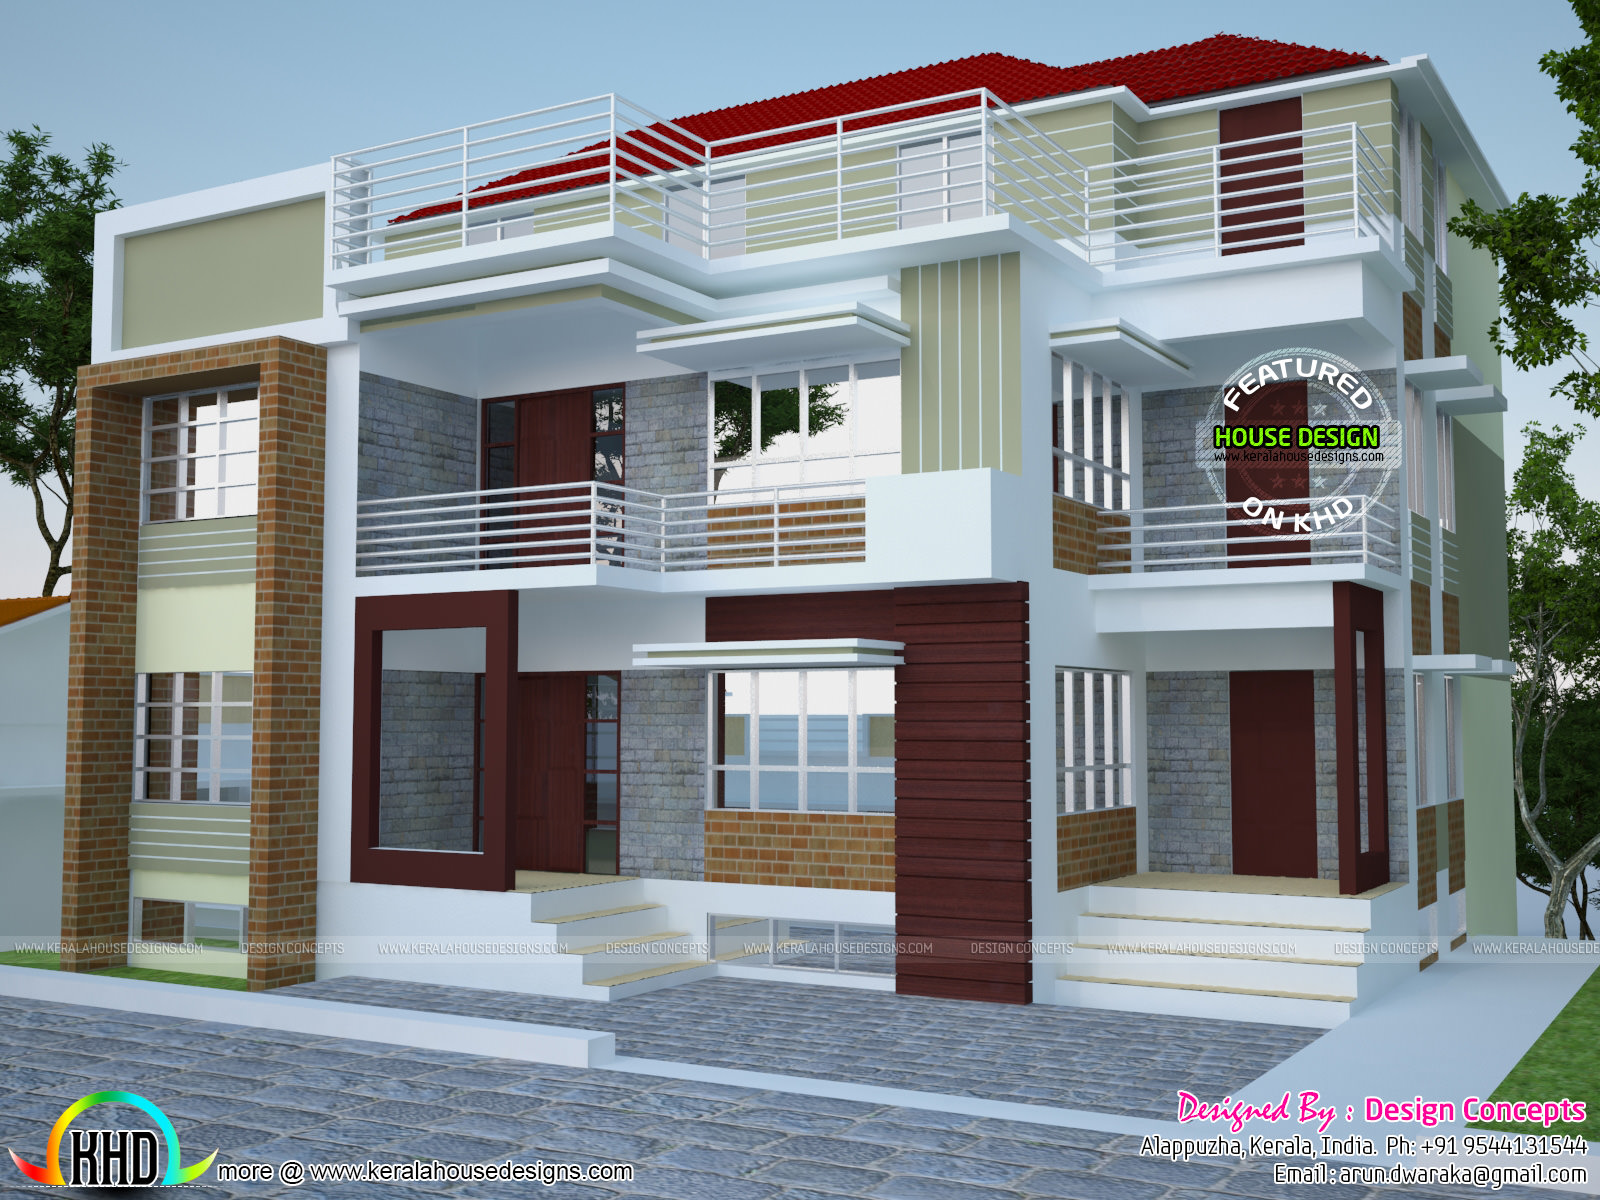 Multi family 4 plex home plan kerala home design and for Multi dwelling house designs